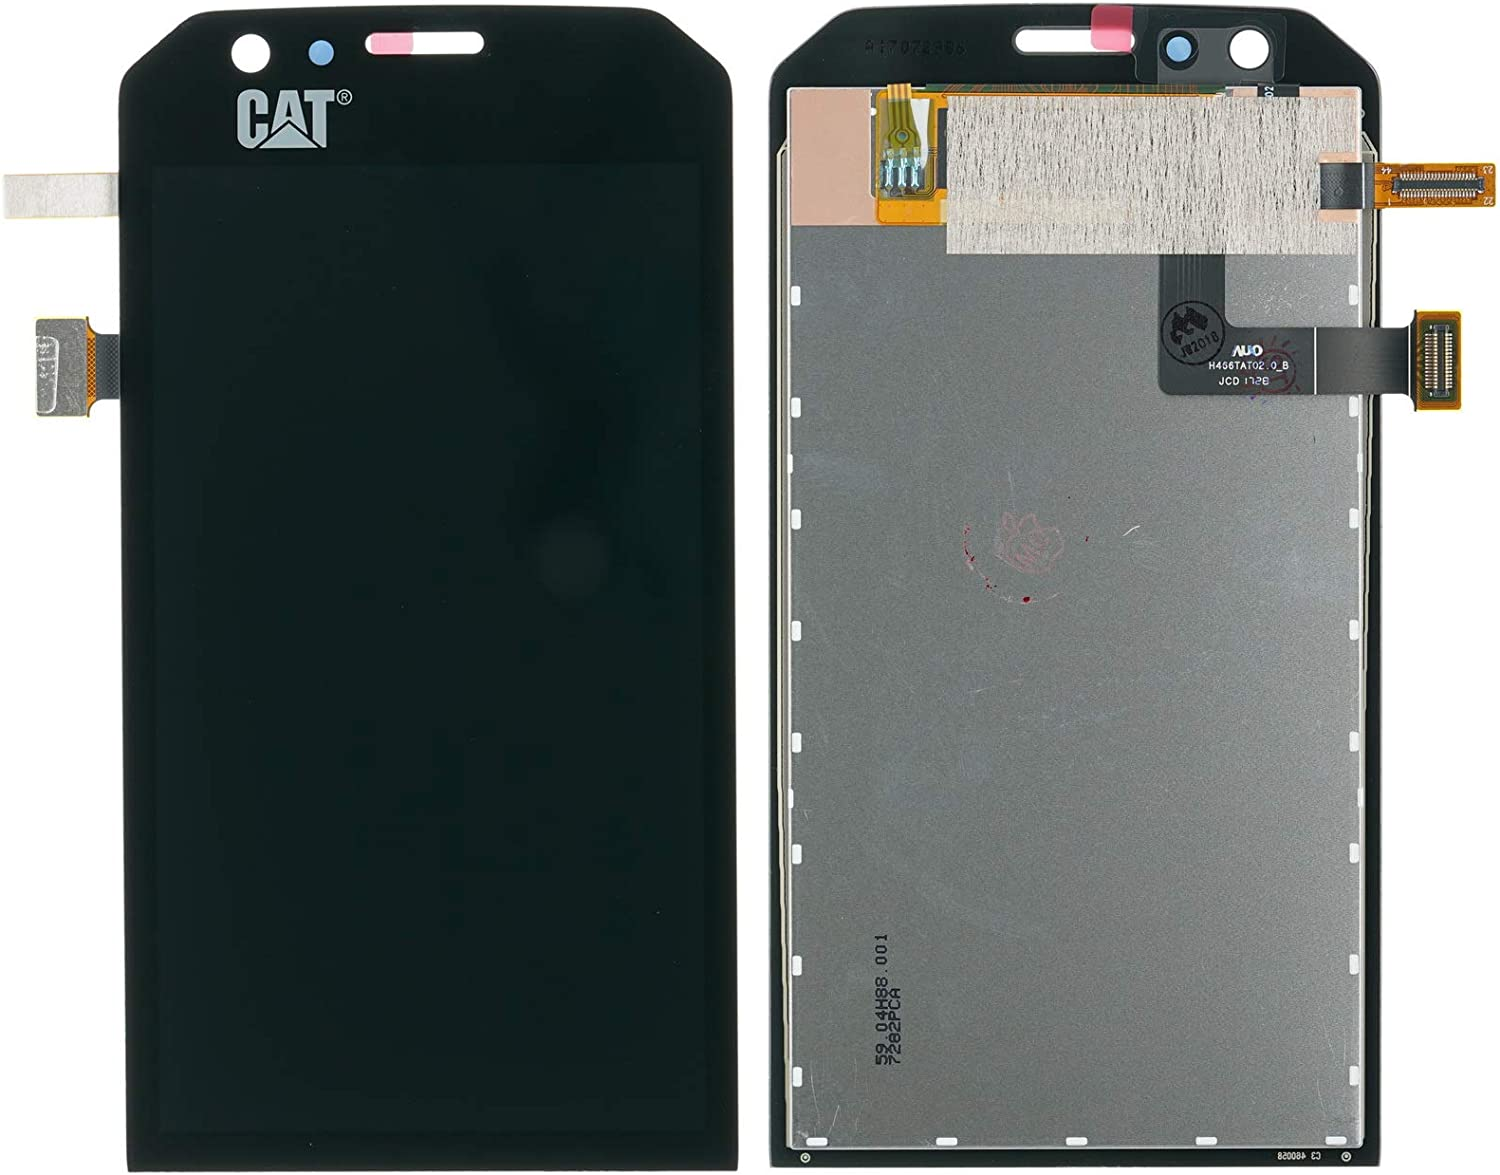 Cat S31 Caterpillar Pantalla LCD táctil X-Cover, Negro Black + NG ...